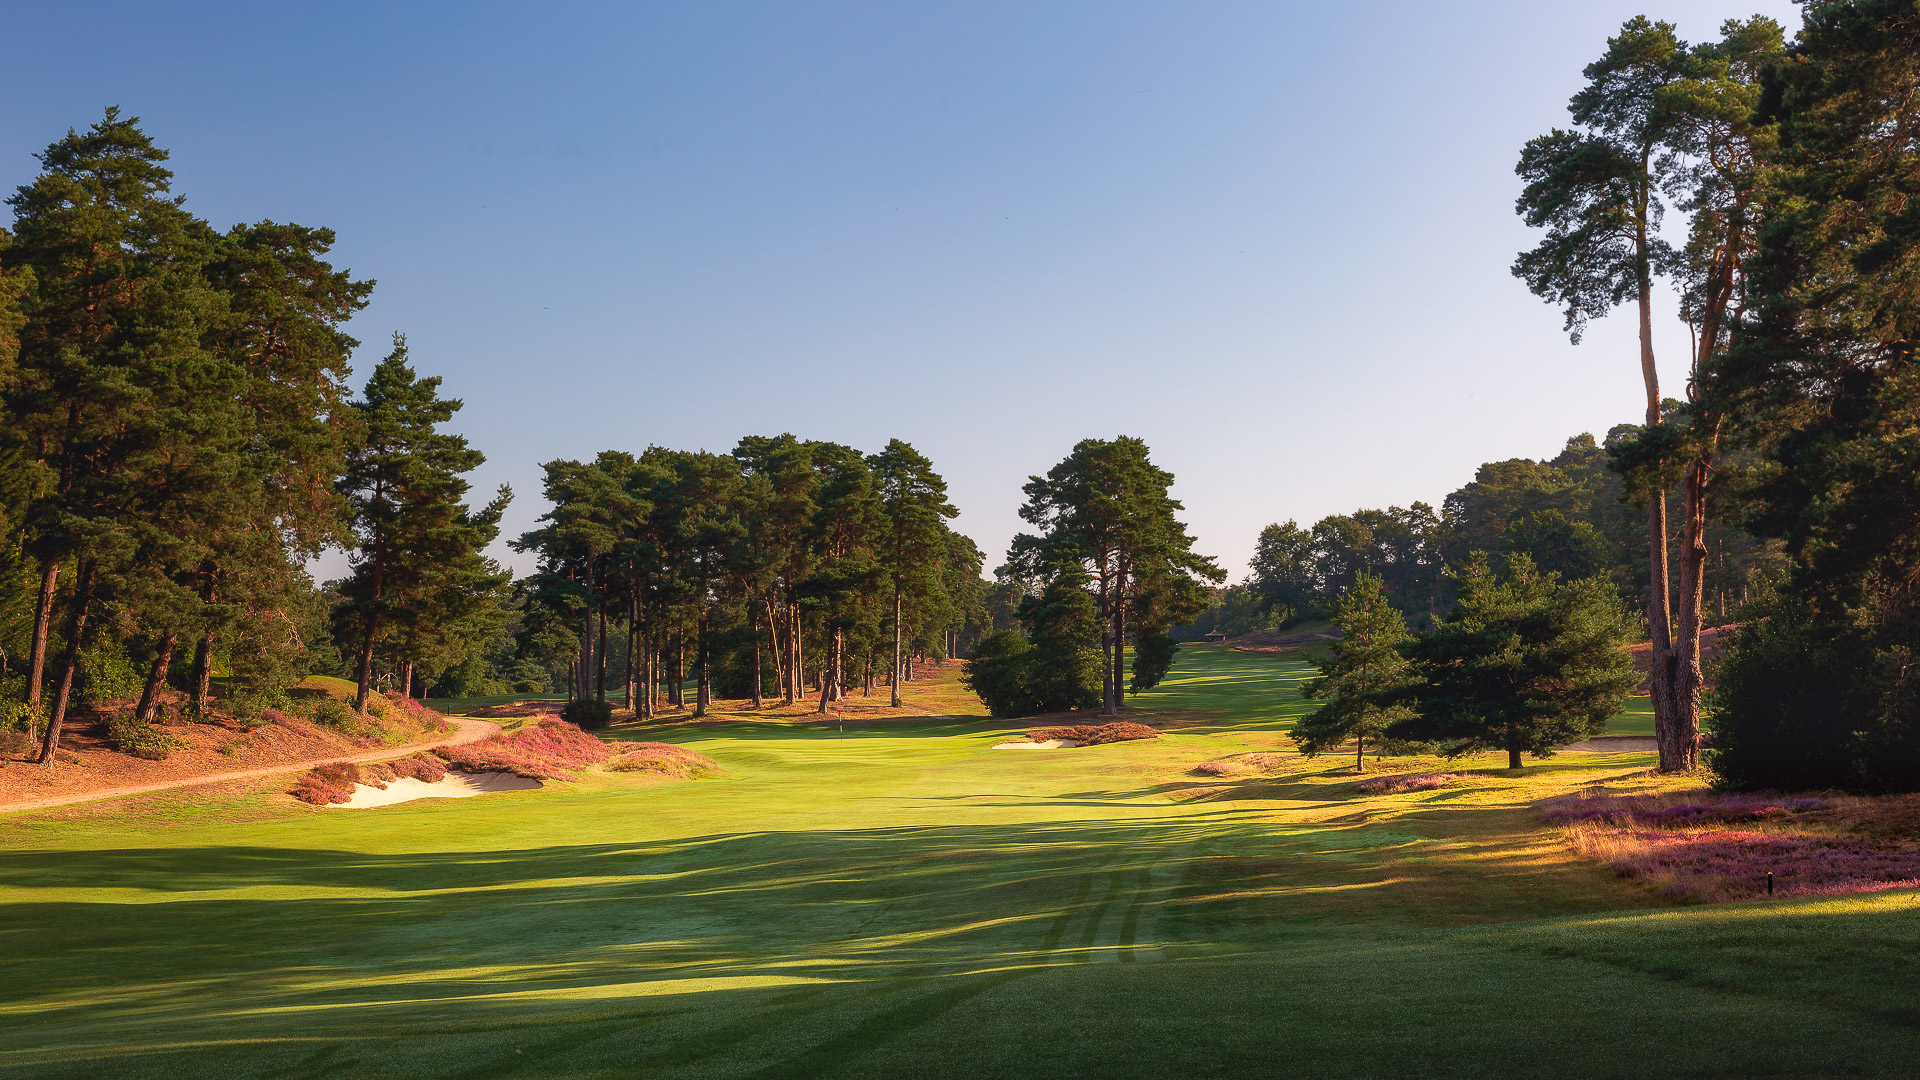 17th-Hole-St-Georges-Hill-Golf-Club-2450-Edit